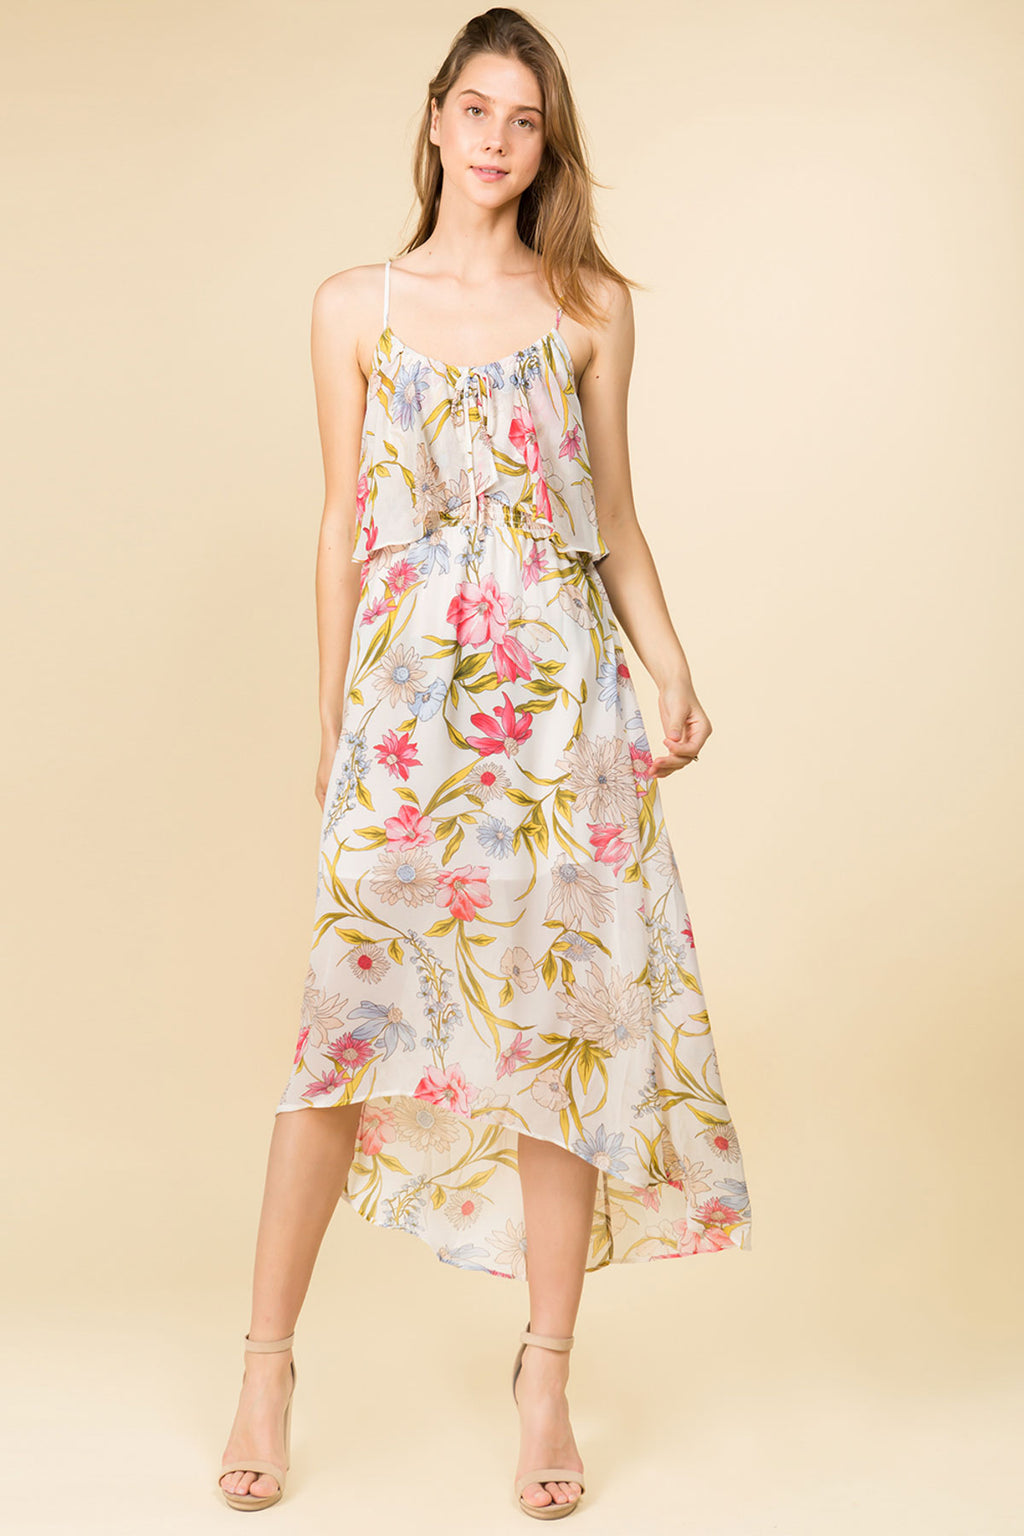 FLORAL HIGH-LOW POPOVER SMOCKED DRESS WITH ADJUSTABLE STRAPS